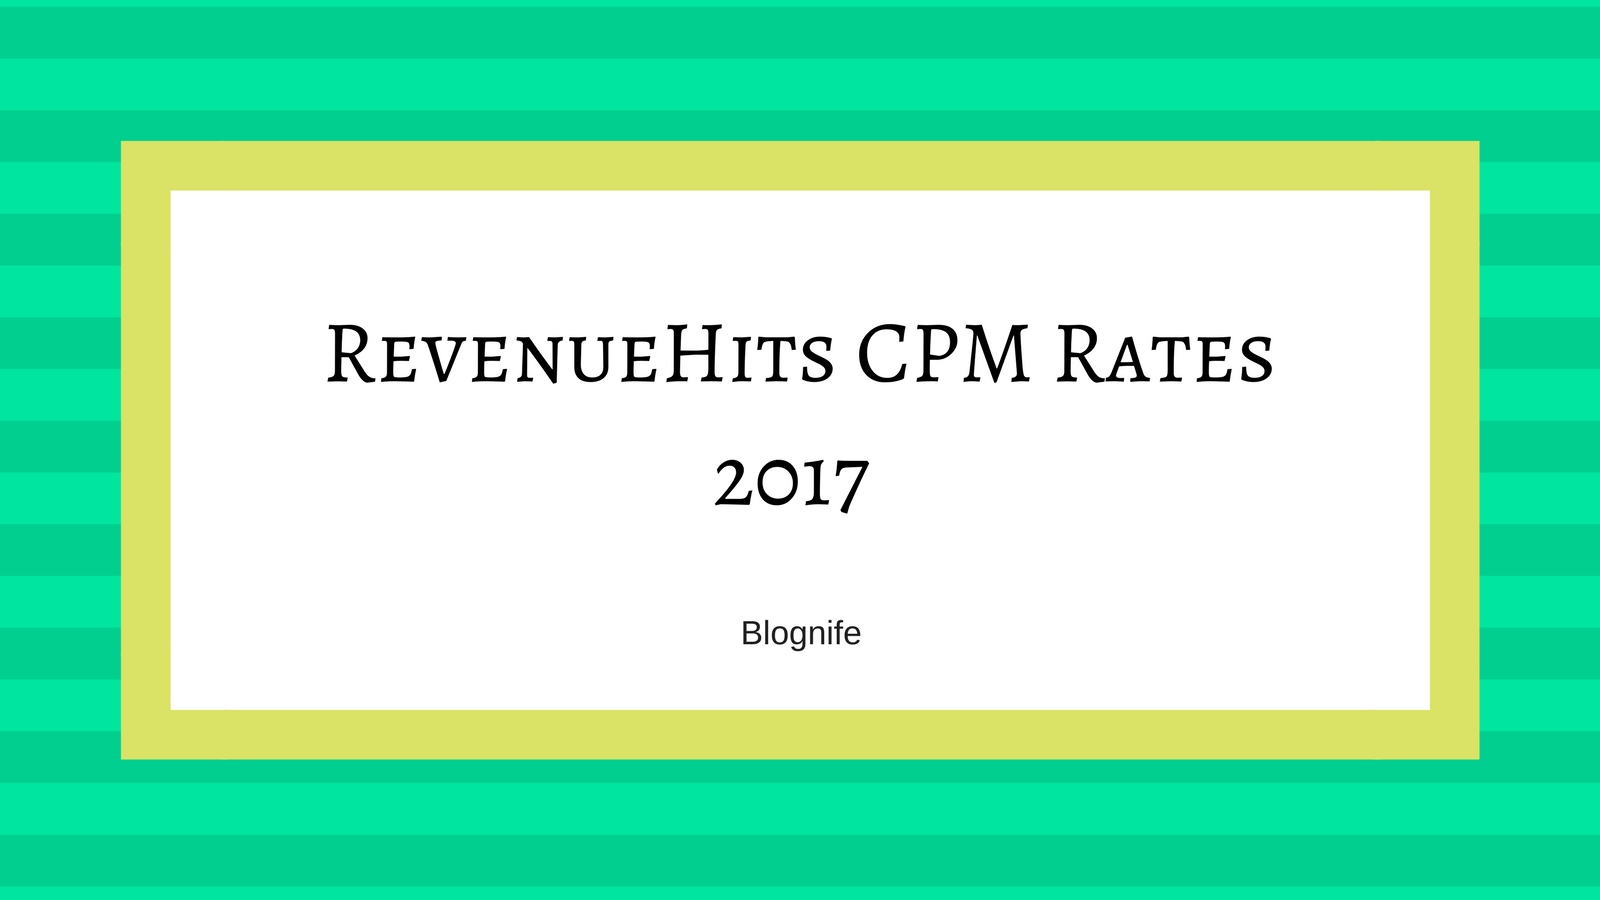 RevenueHits CPM Rates 2019